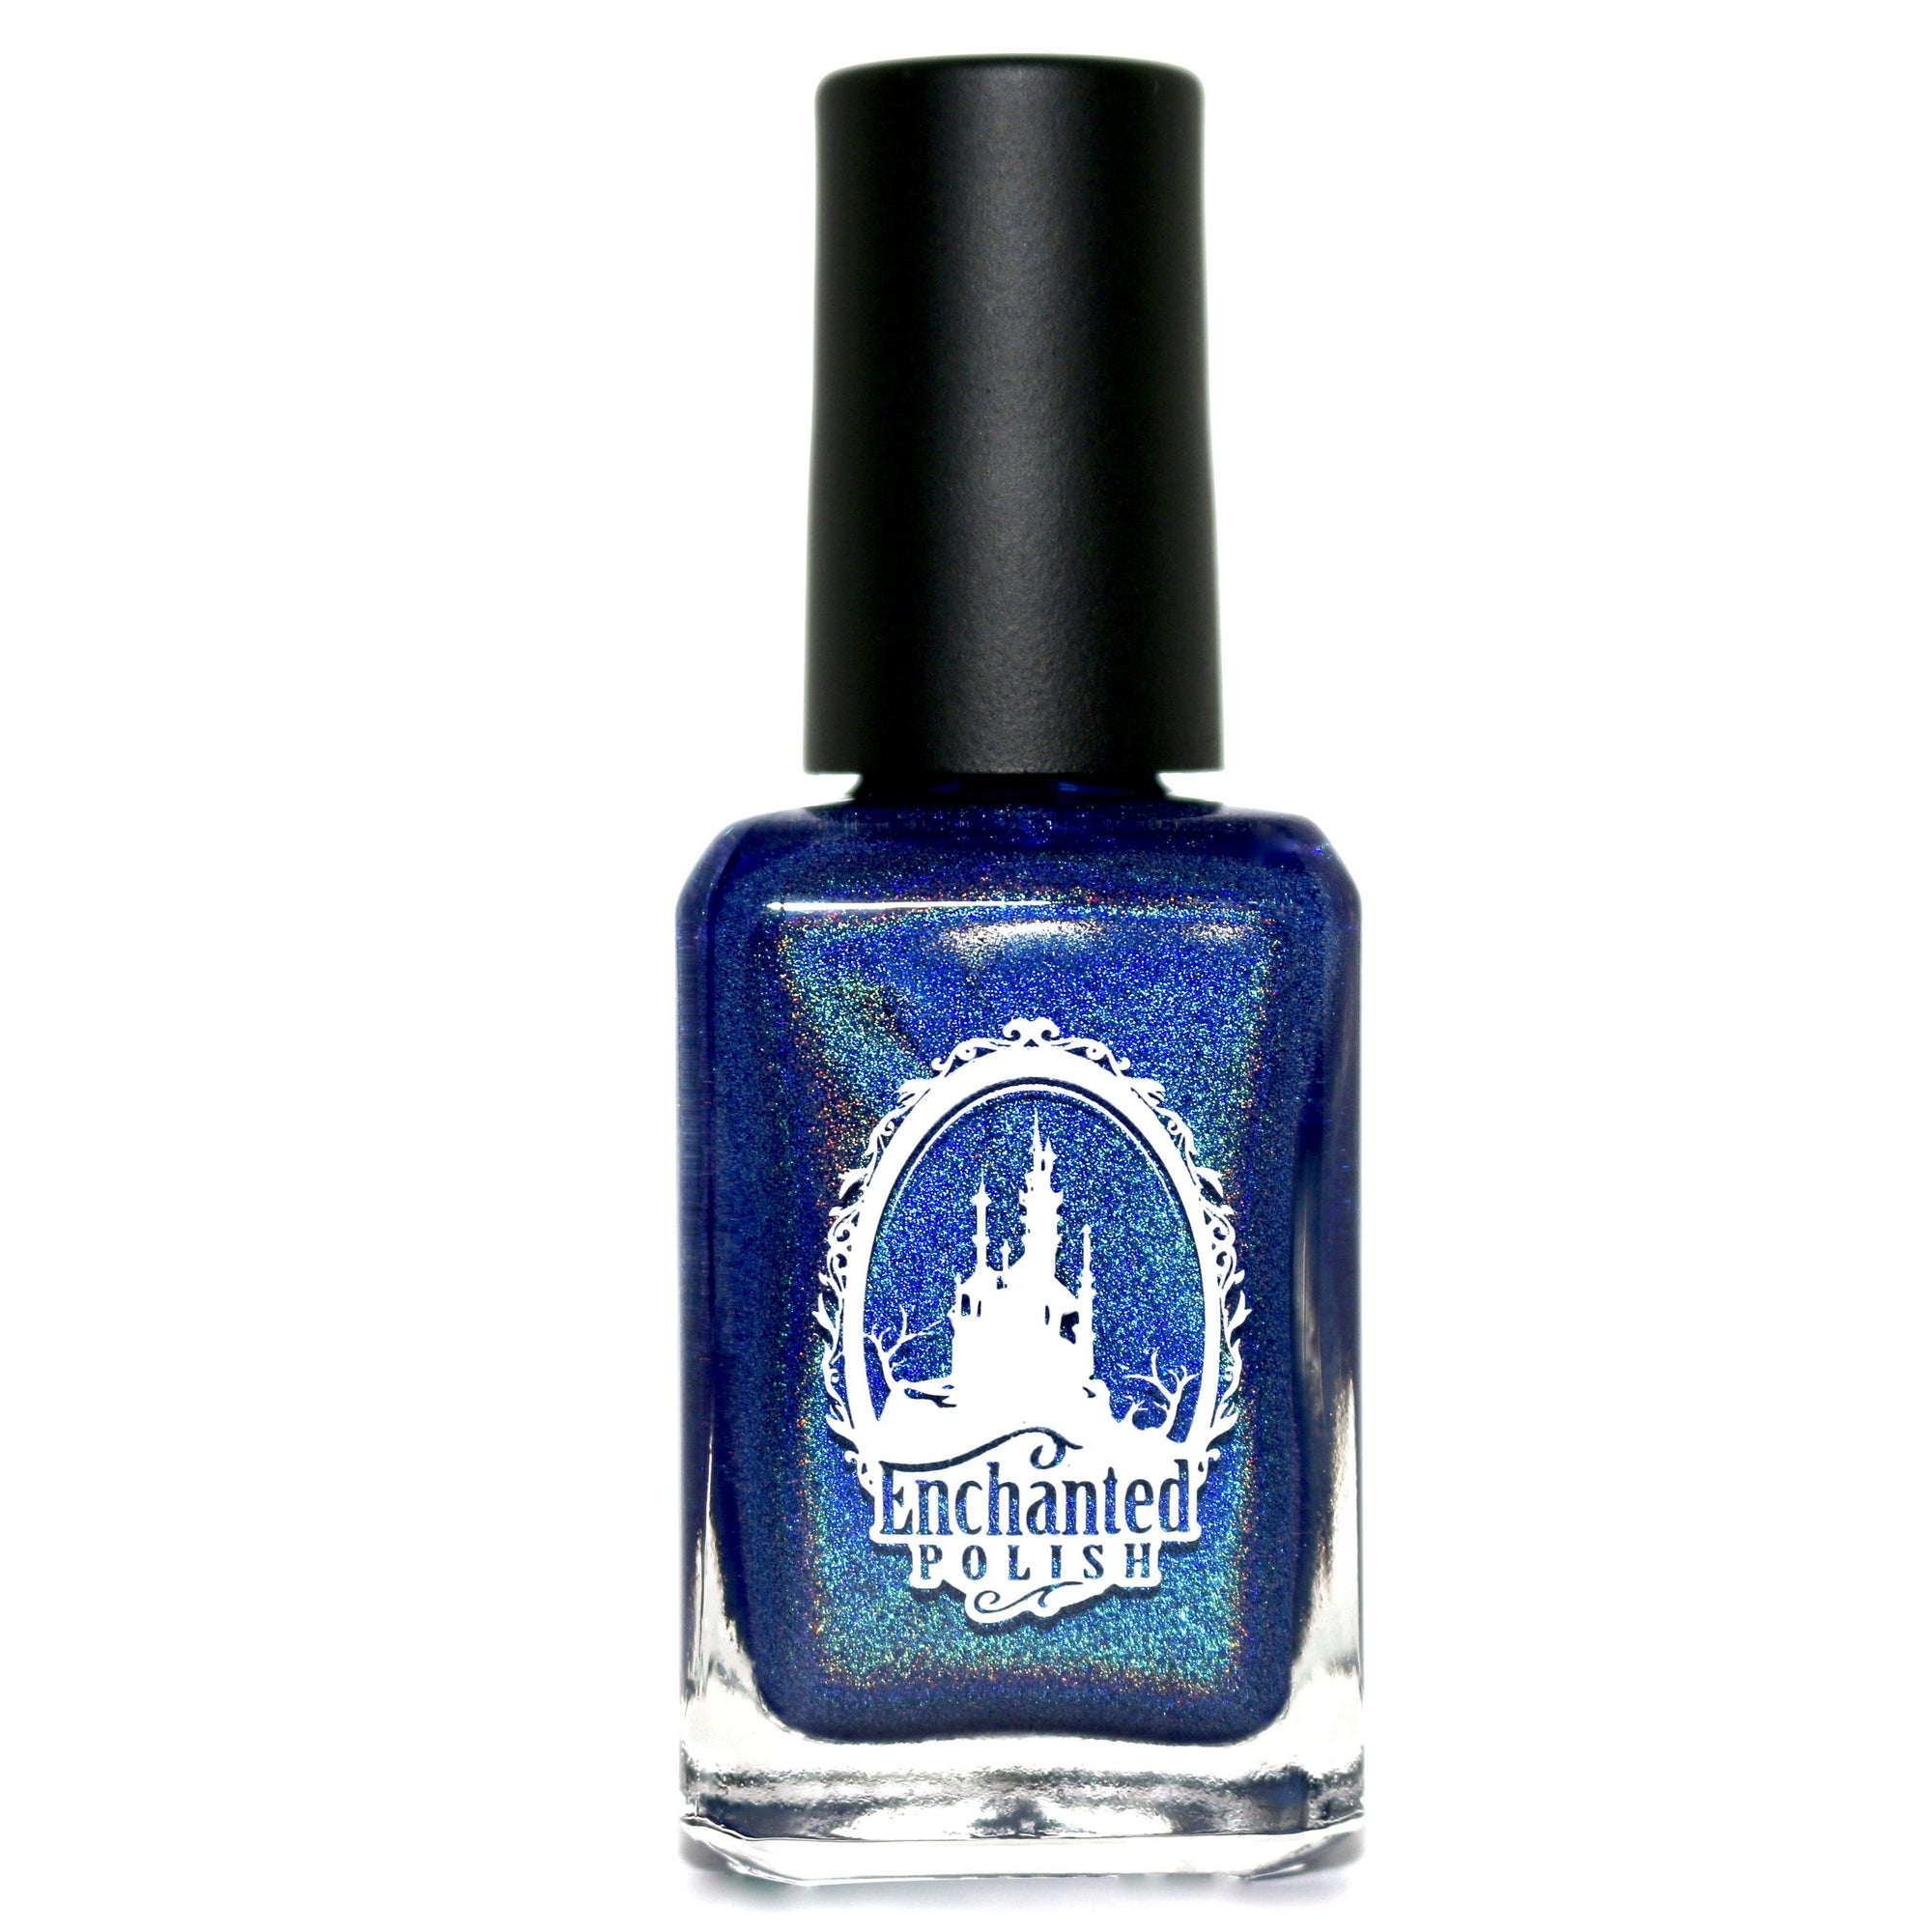 *PRE-ORDER* Enchanted Polish - Lake Rainbow